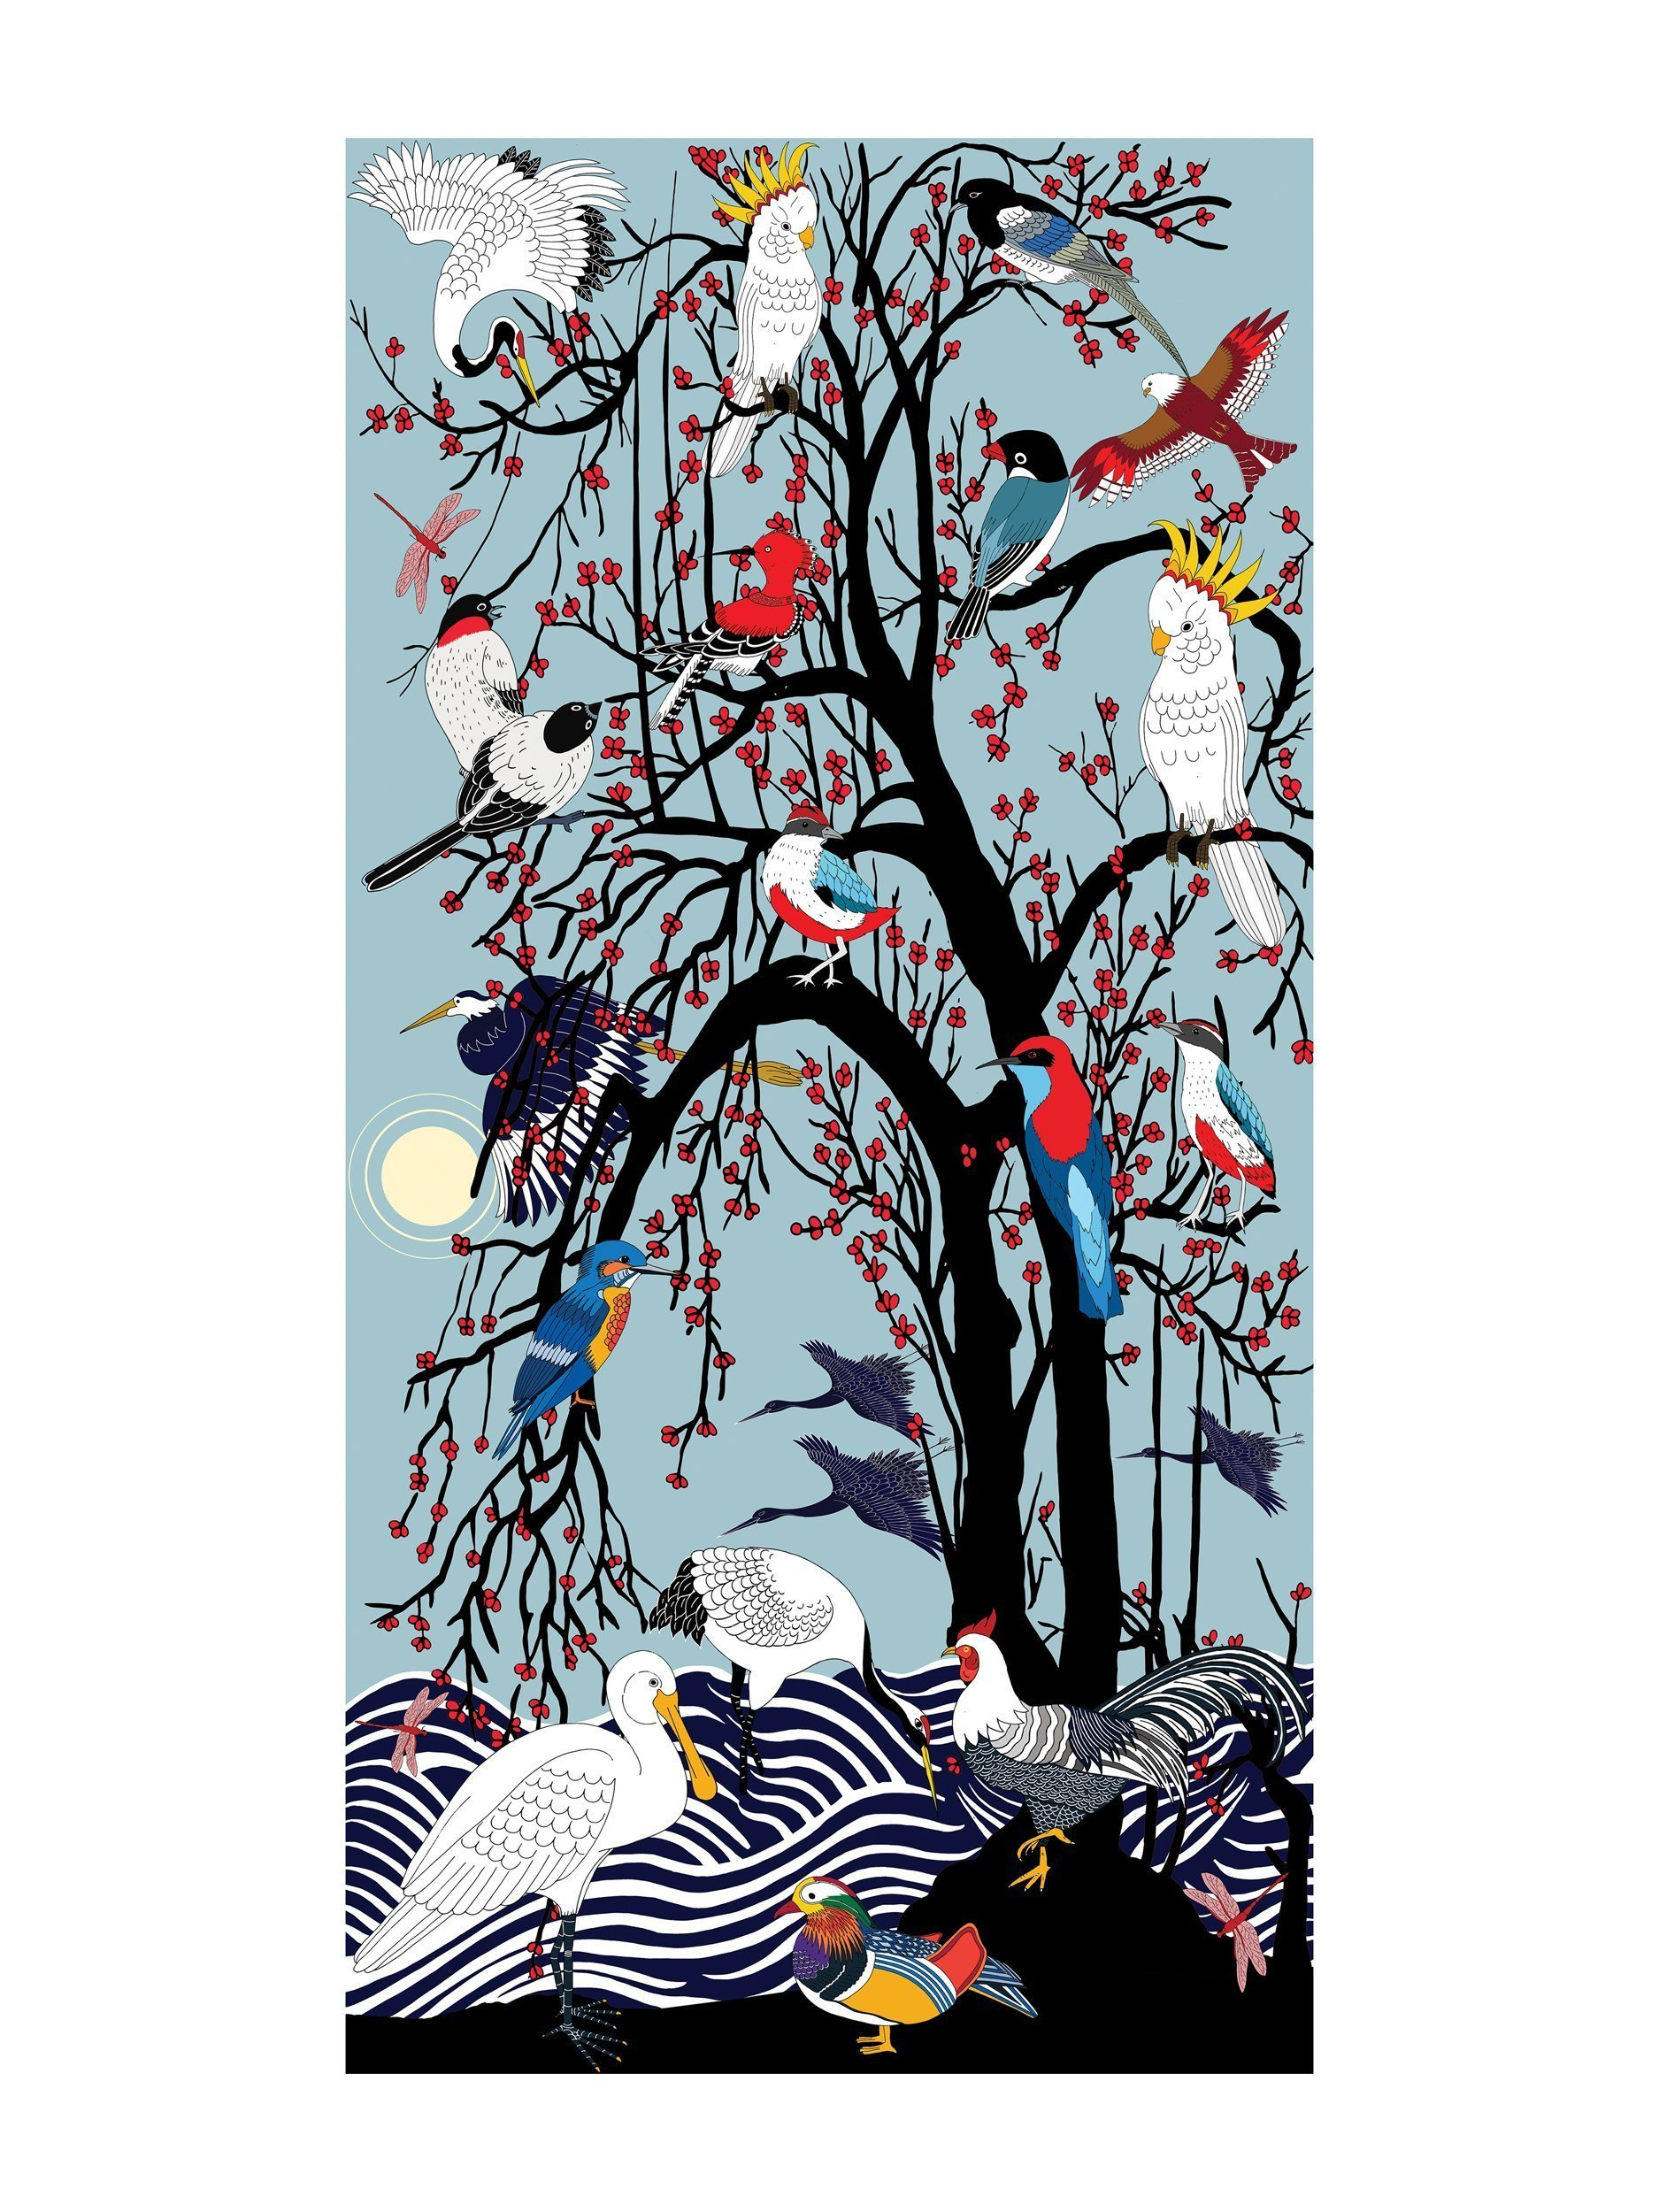 Birds of China - Oil on canvas, 2019 Painting available: 140cm x 70cm ¥89950 Limited edition print:40cm x 80cm ¥6500 Limited edition print: 20cm x 40cm ¥1600